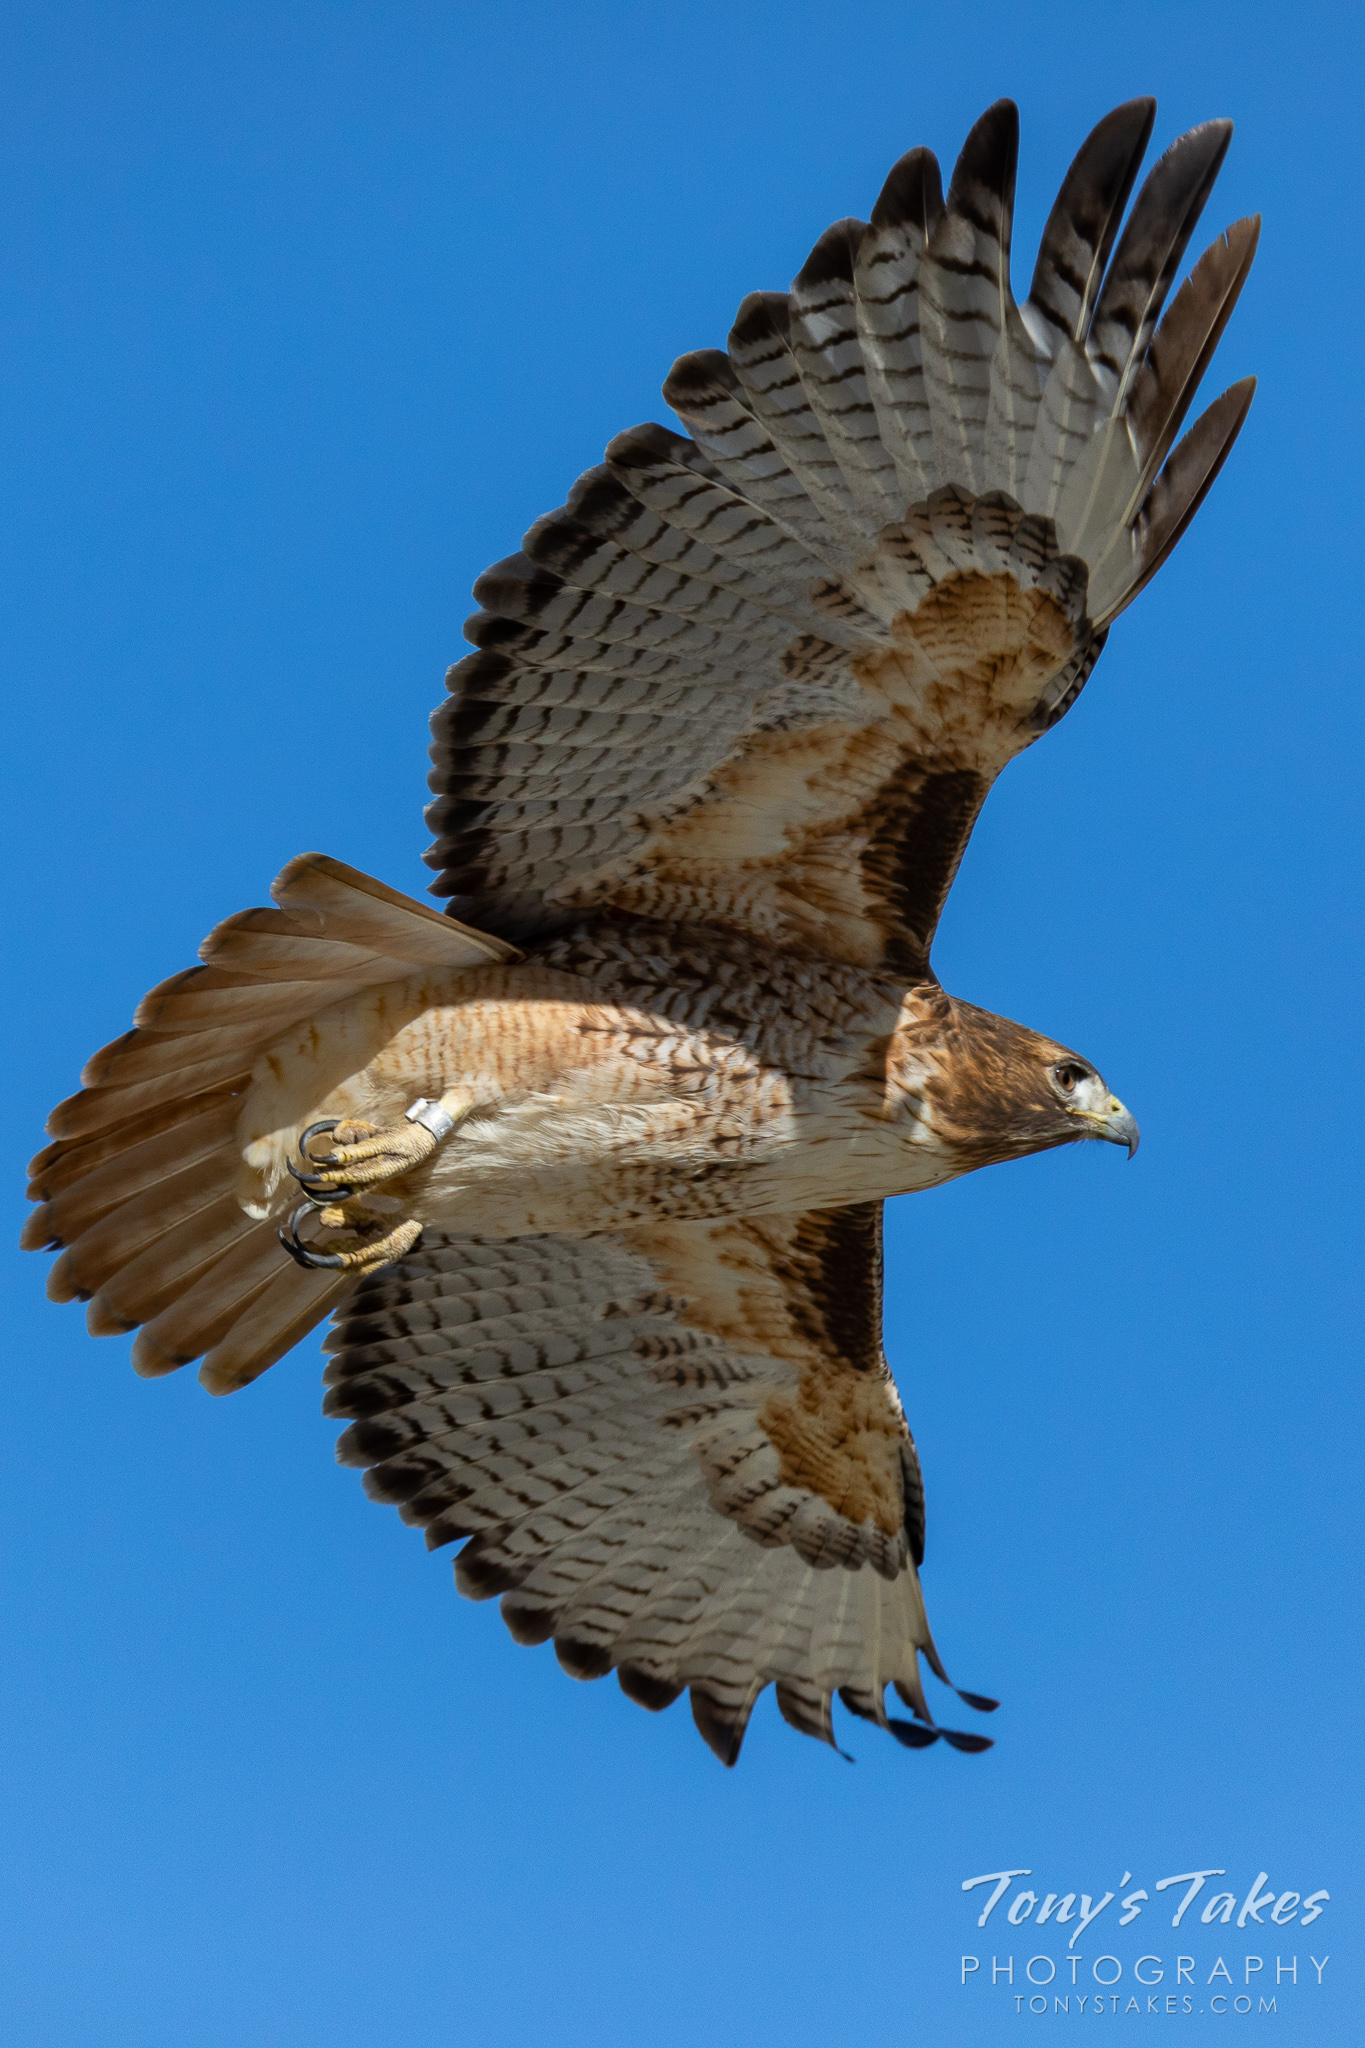 A red tailed hawk takes flight. (© Tony's Takes)